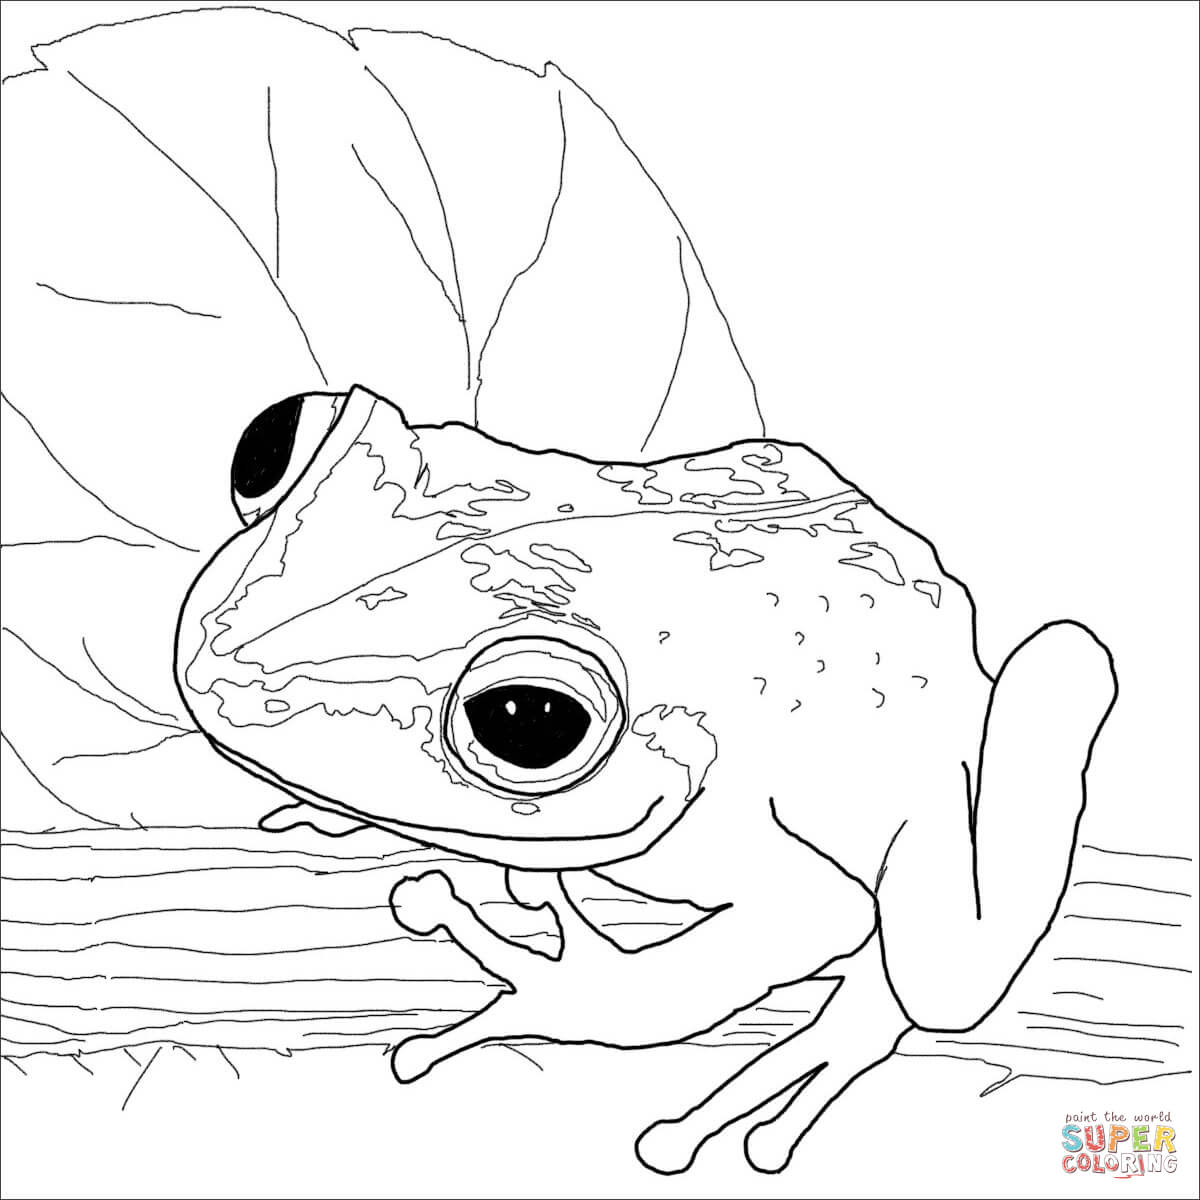 Coqui coloring page